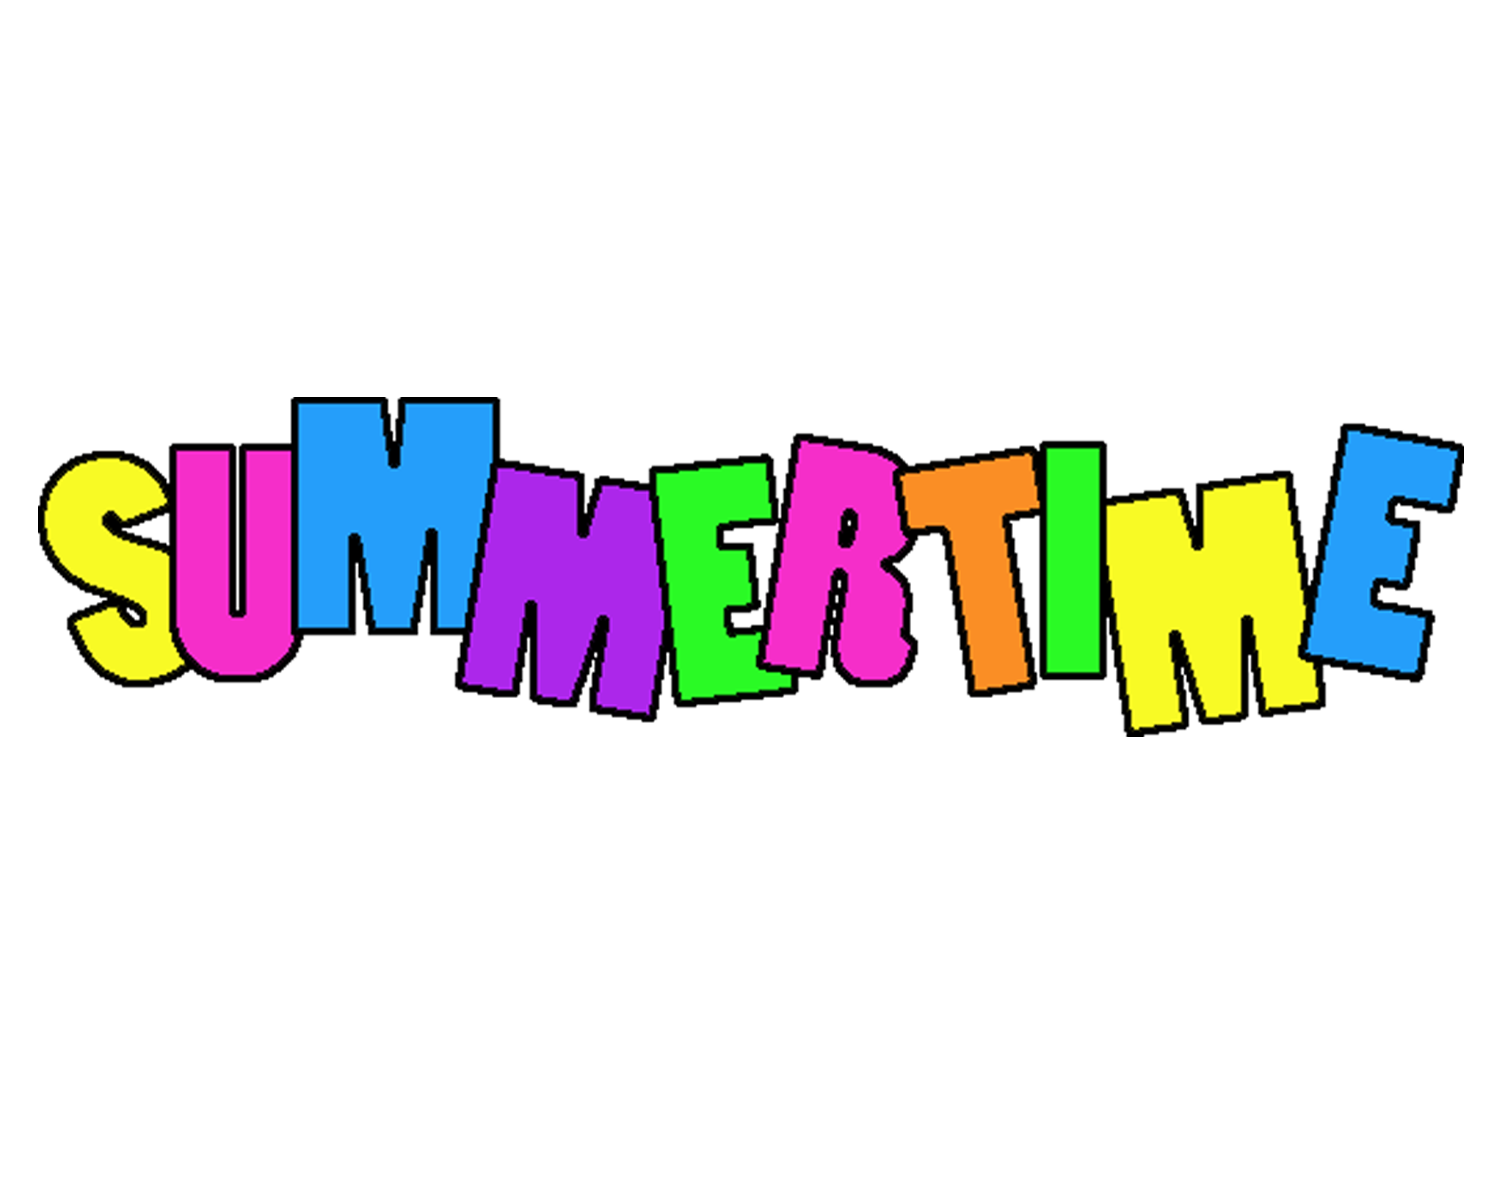 Summertime Clipart   Clipart Panda   Free Clipart Images